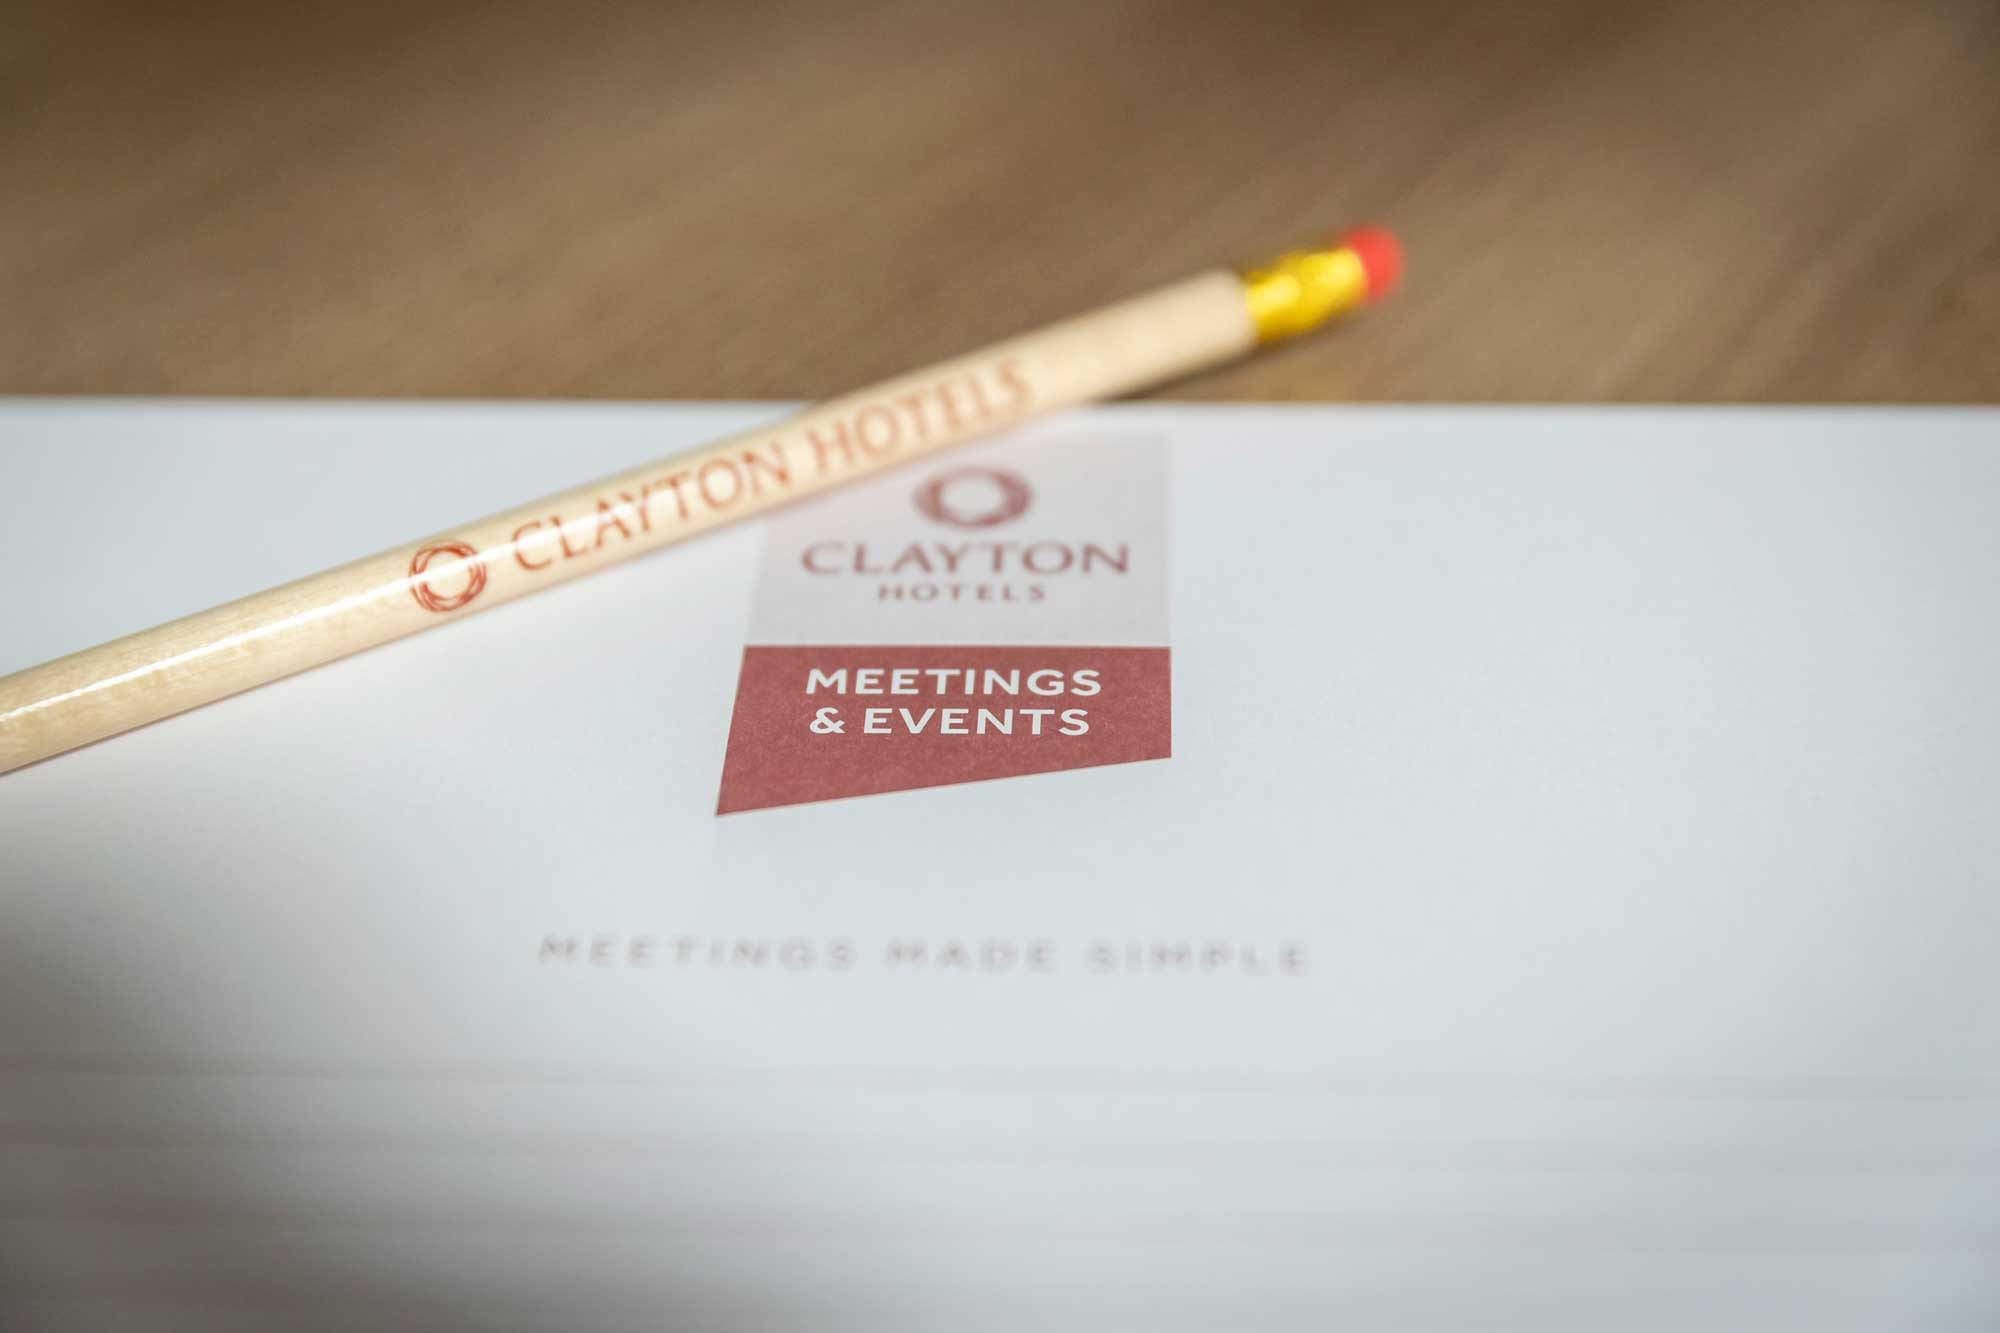 Clayton Hotels meeting delegate stationary